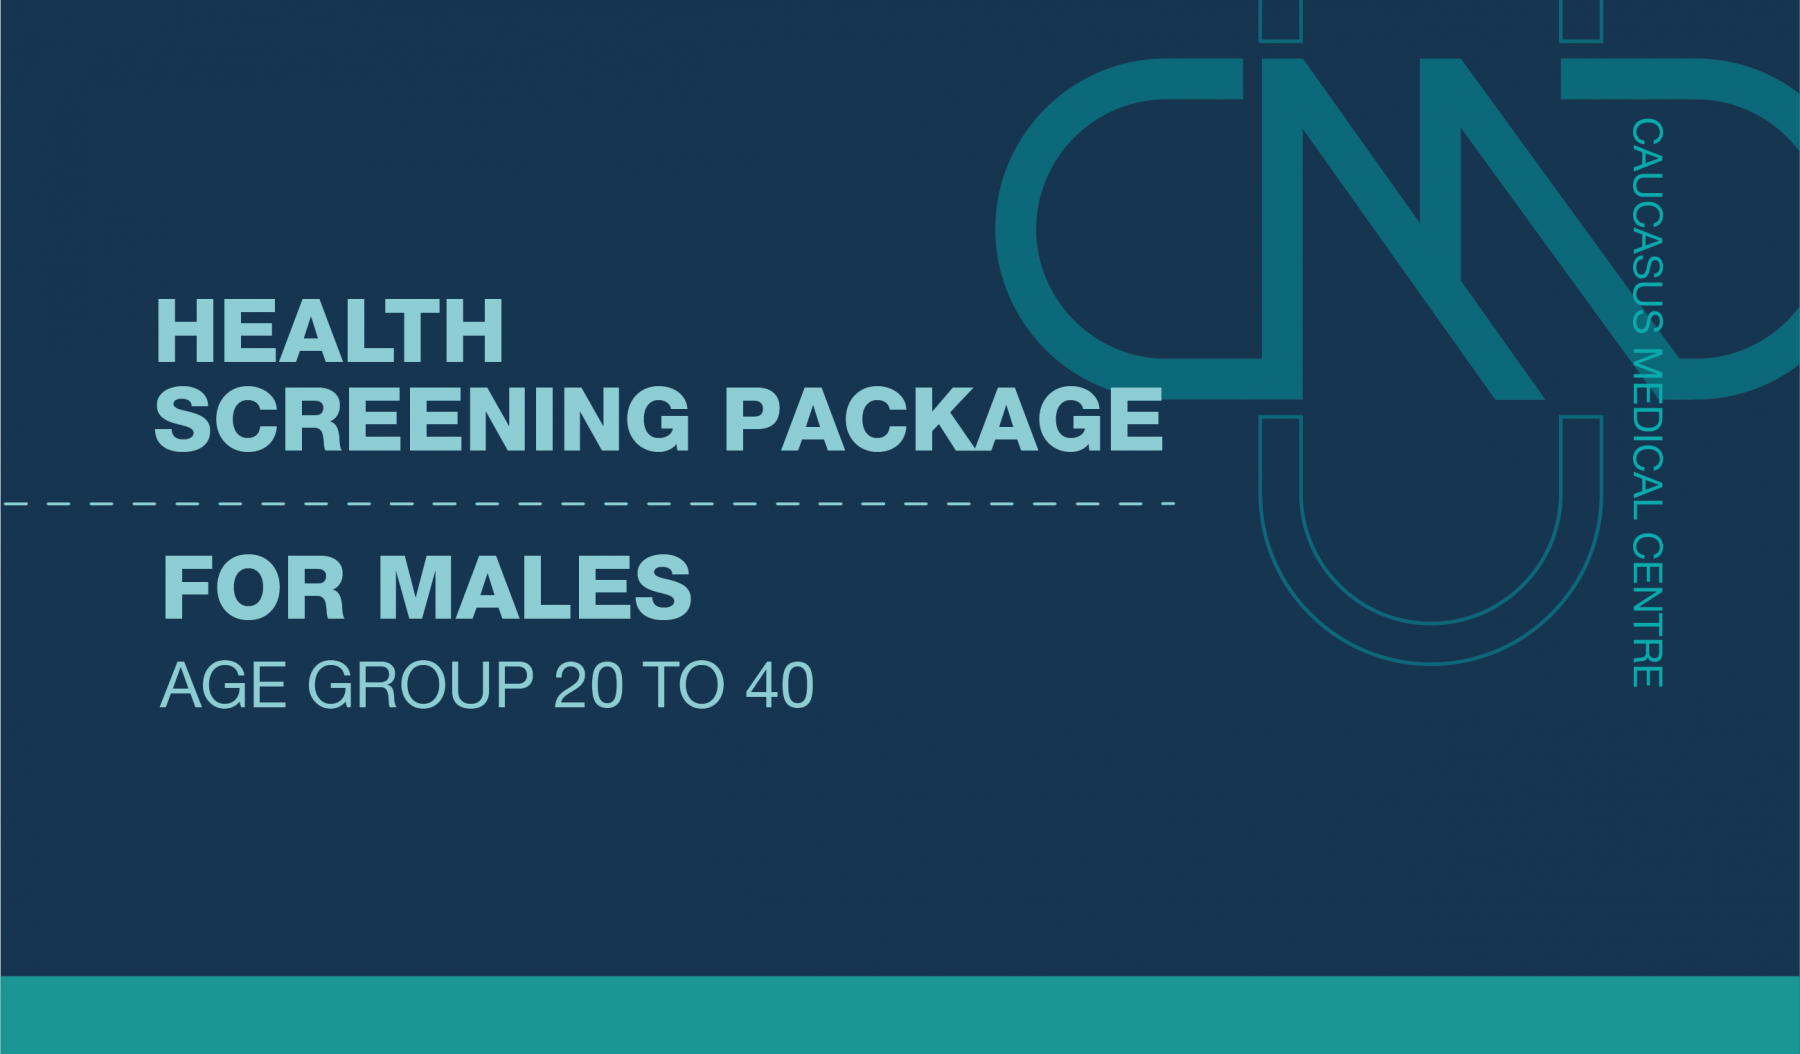 PREMIUM HEALTH SCREENING PACKAGE FOR MALES AGE GROUP 20 TO 40